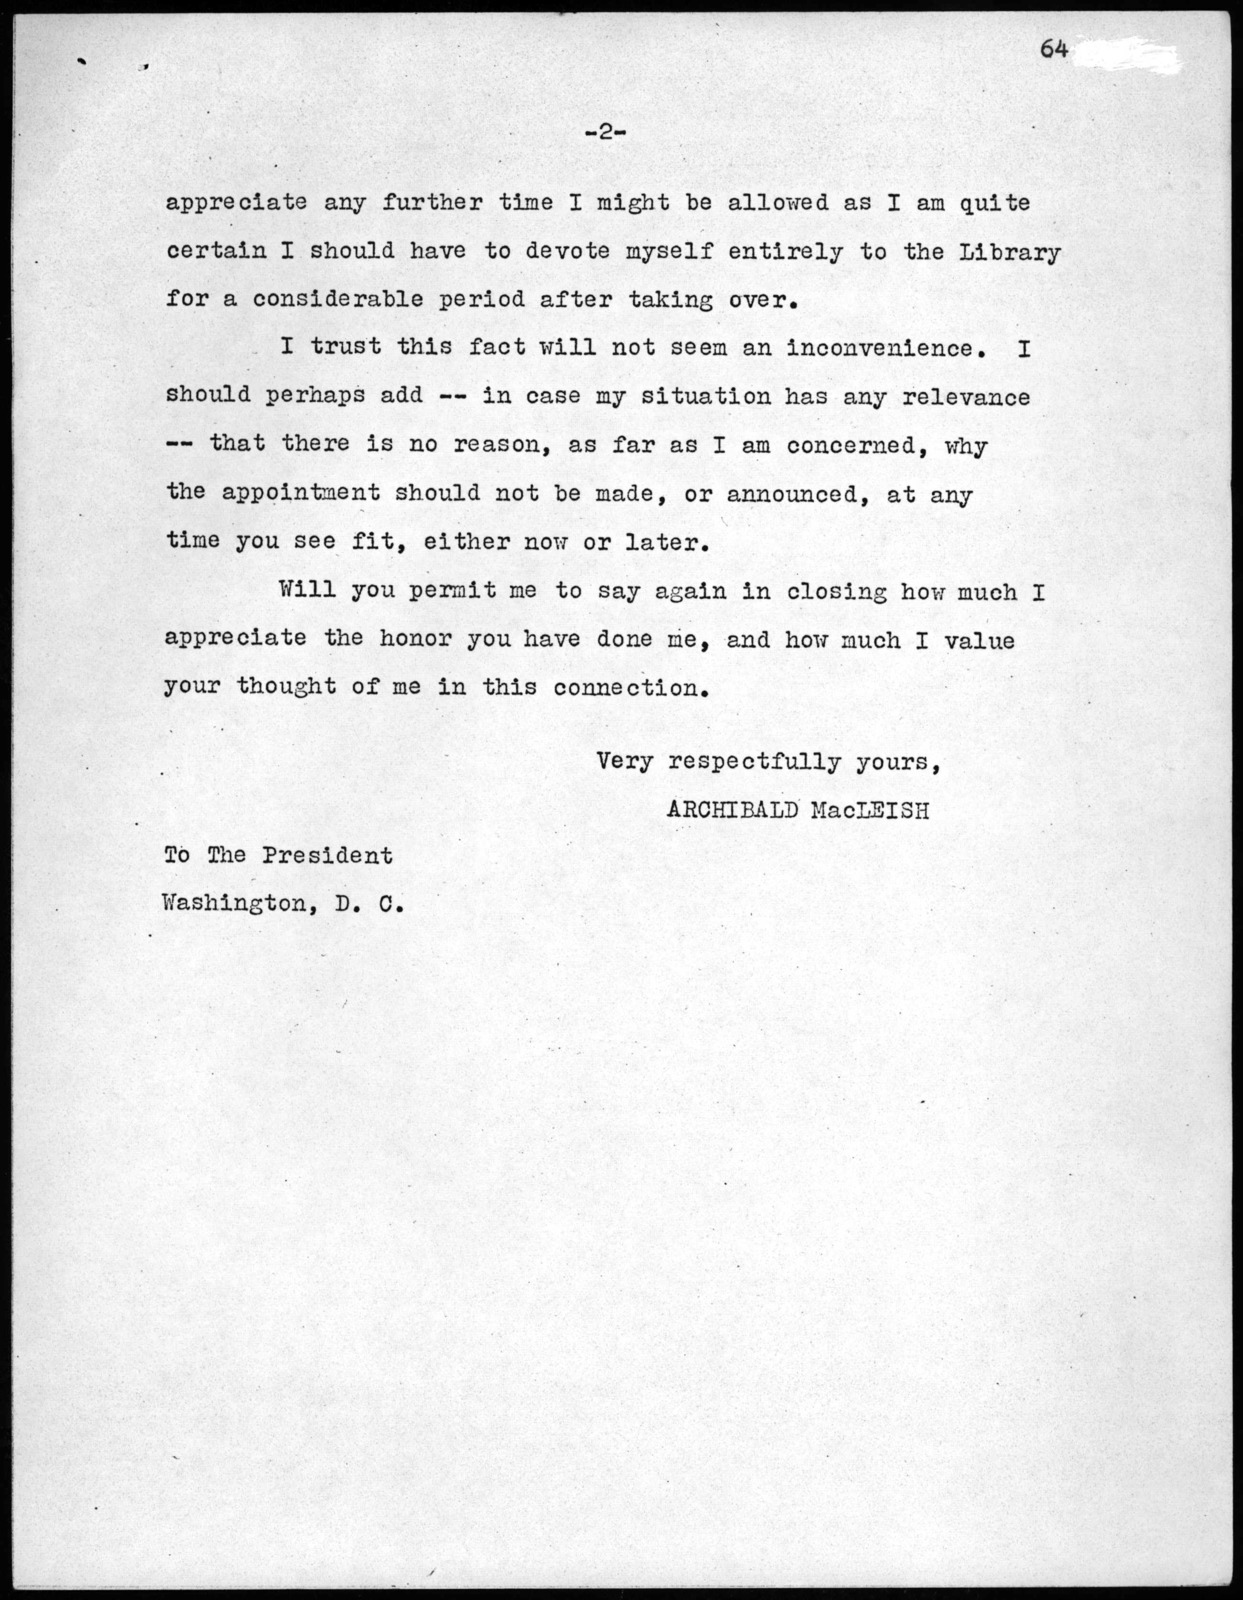 Letter from Archibald MacLeish to Franklin D. Roosevelt, June 1, 1939